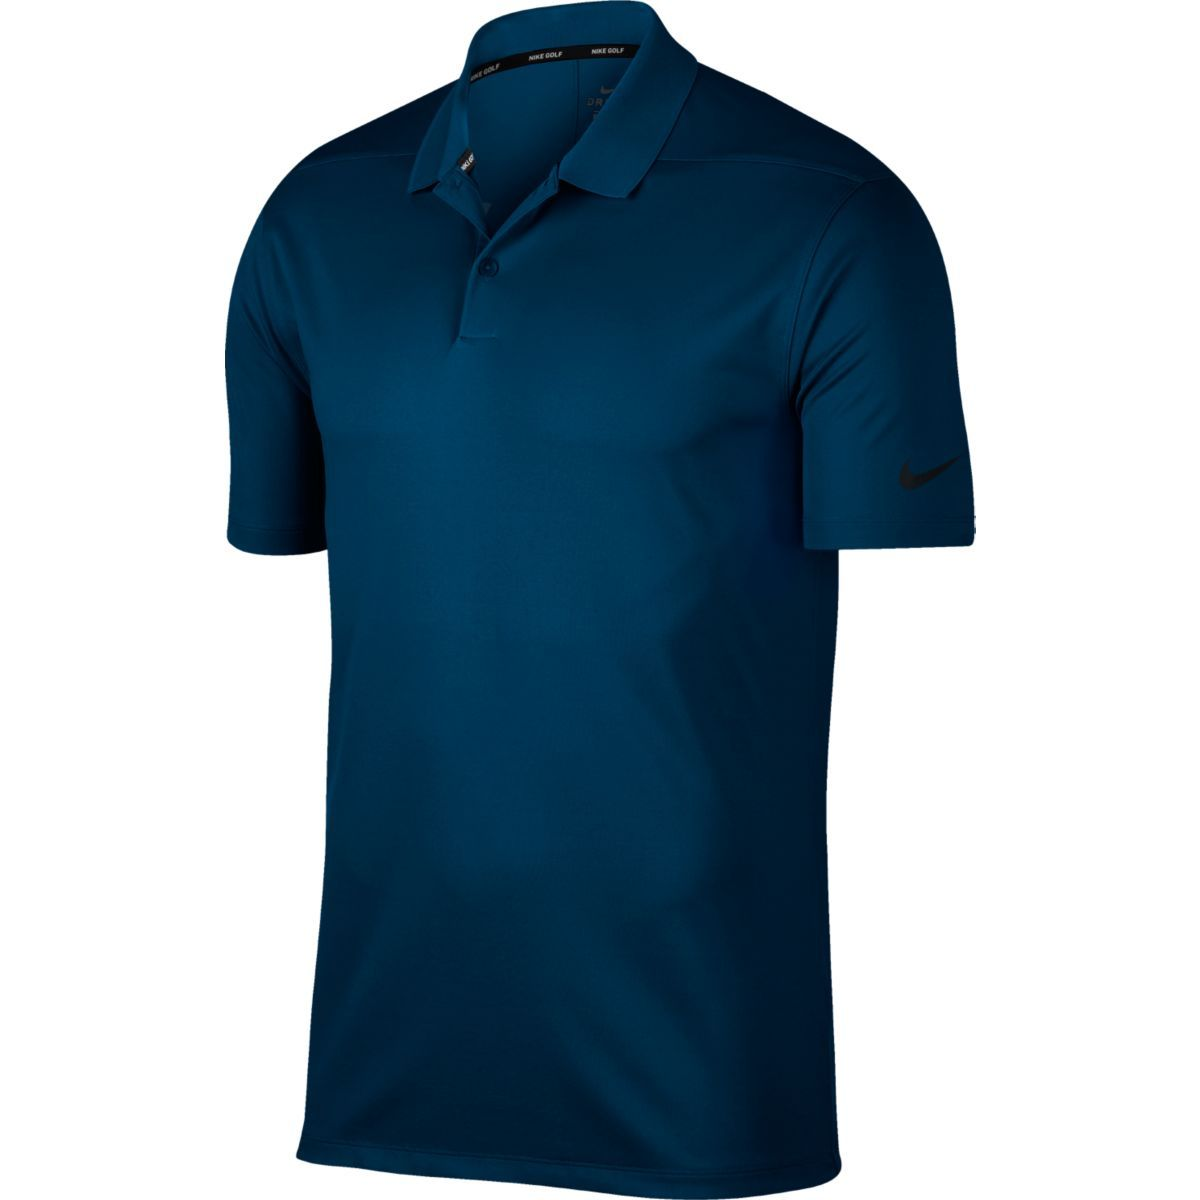 Nike Men Victory Solid Polo Navy Swoosh Logo Left Chest - 891857-419